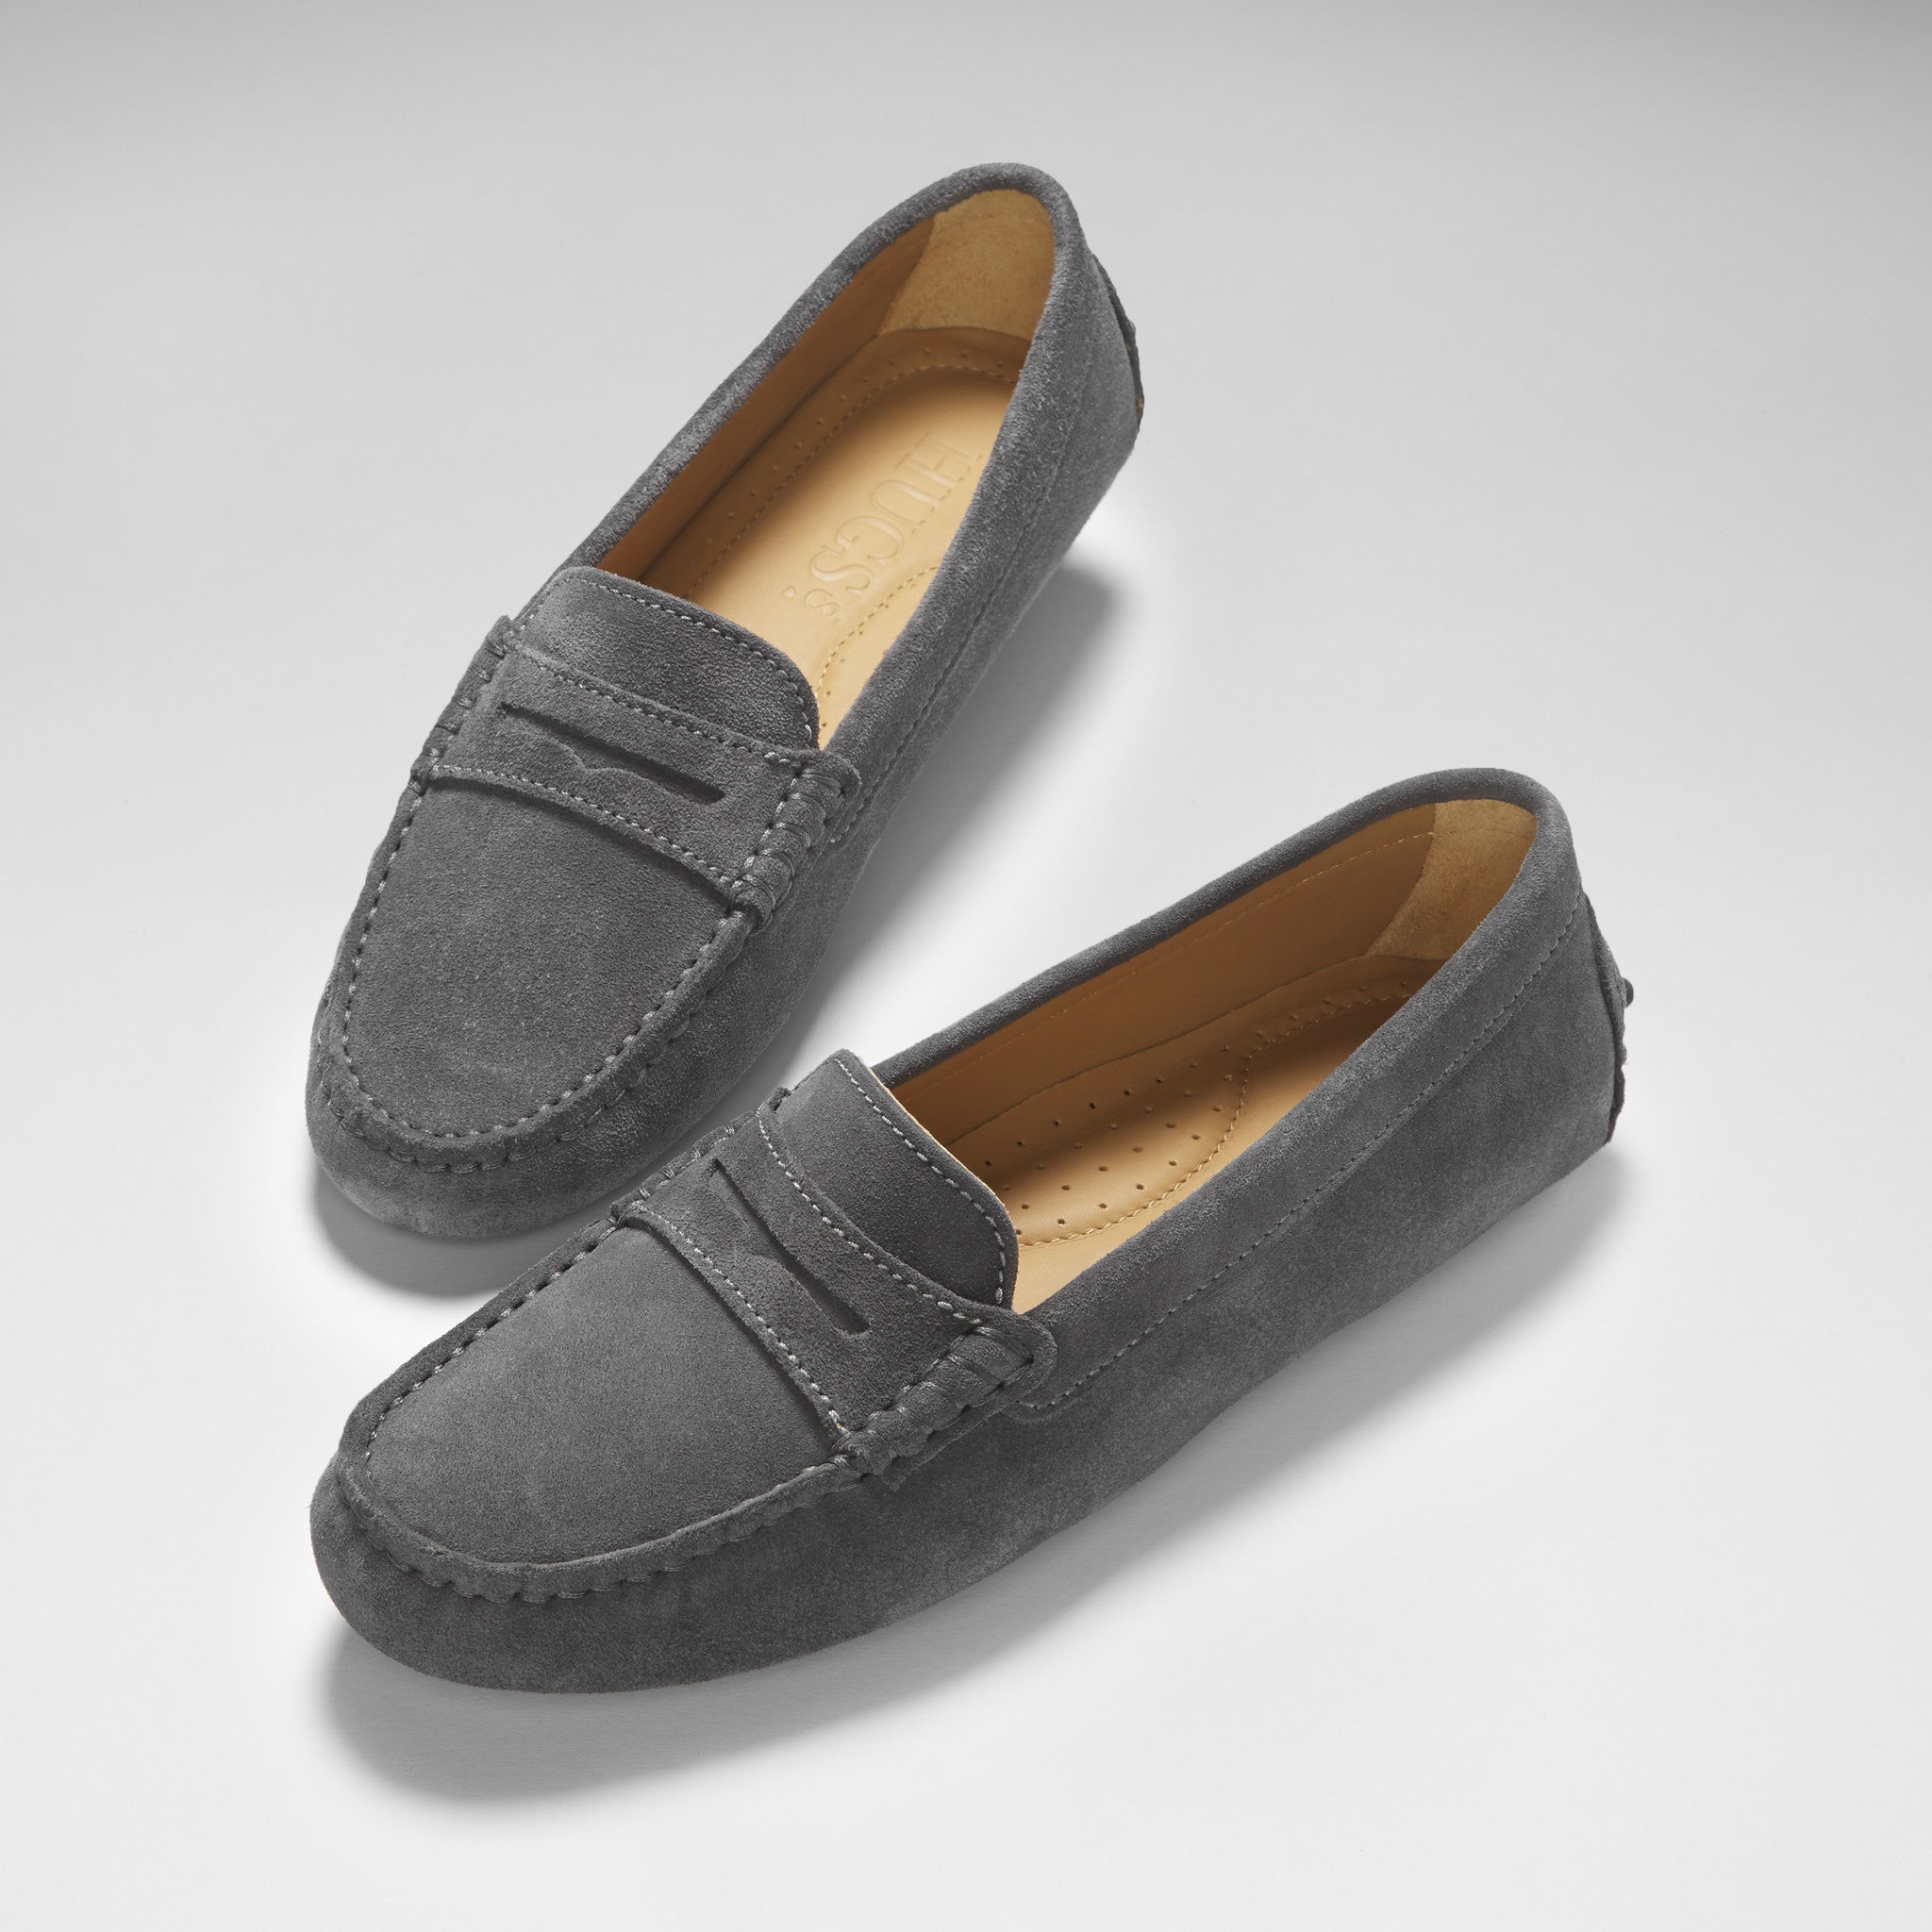 Women's Penny Driving Loafers, turquoise suede - Hugs & Co.